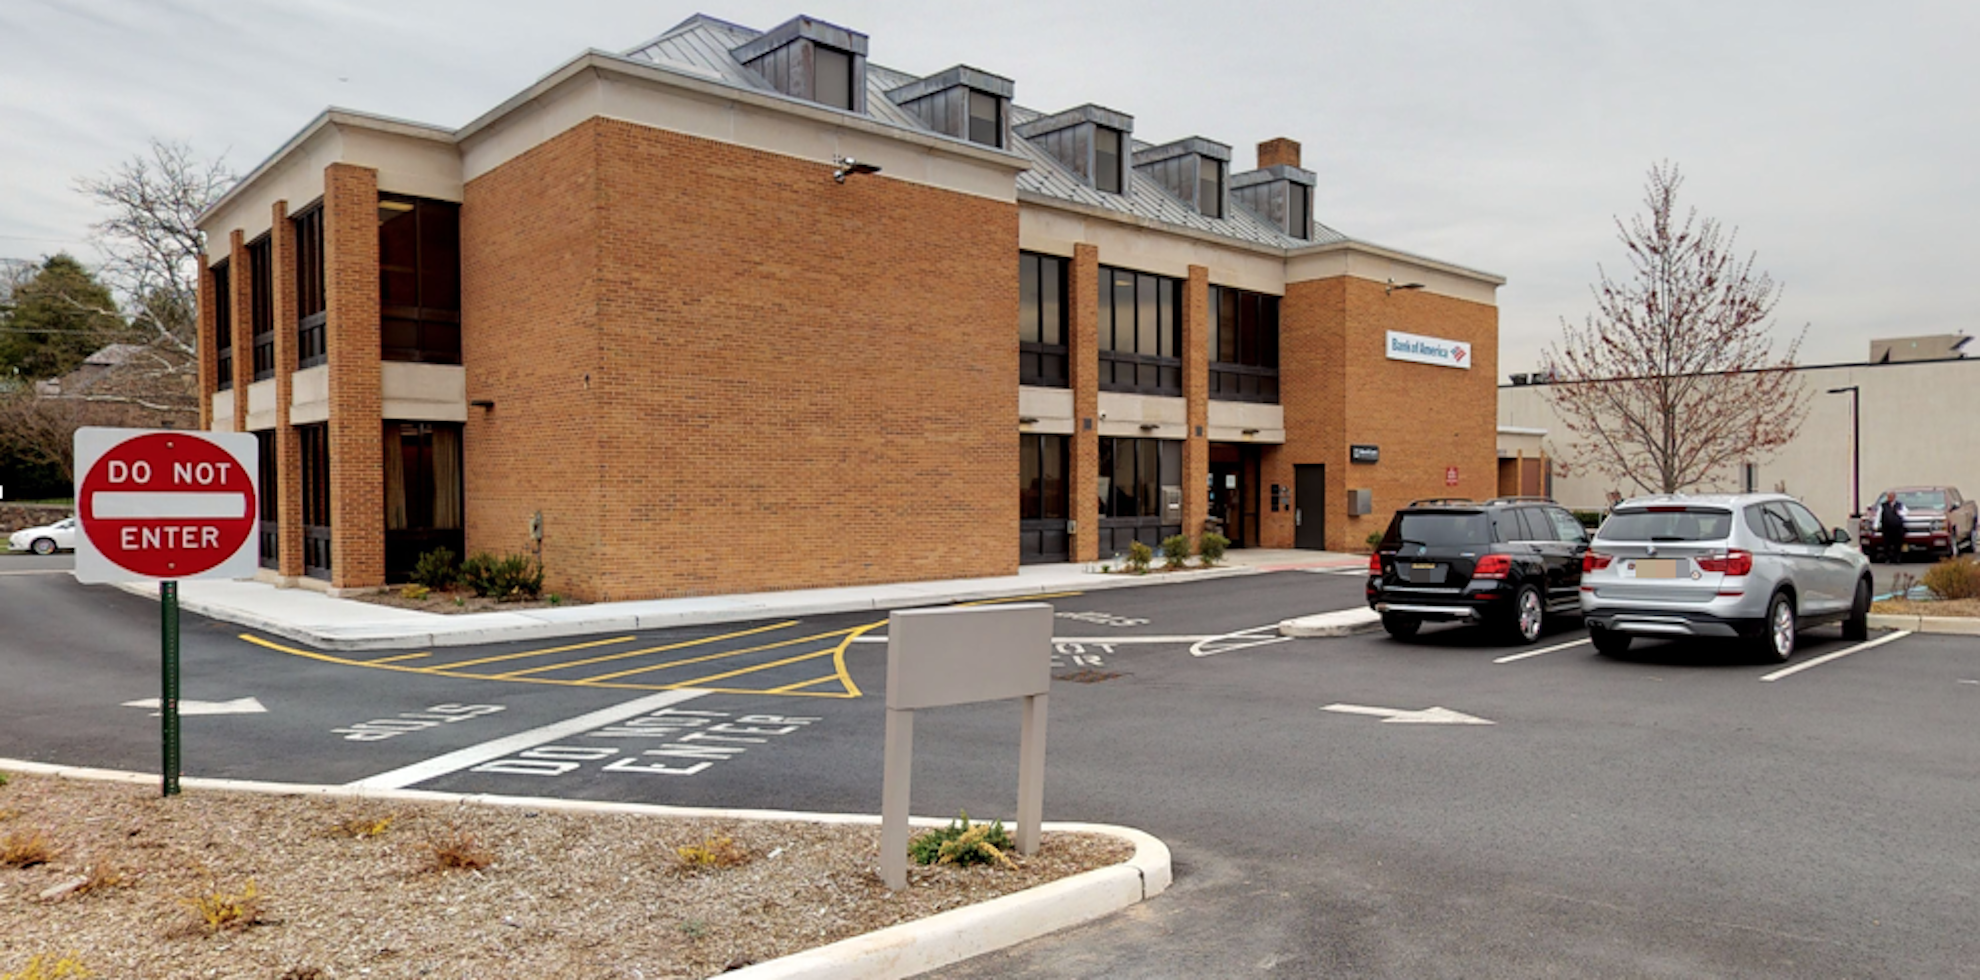 Bank of America financial center with drive-thru ATM | 173 Elm St, Westfield, NJ 07090